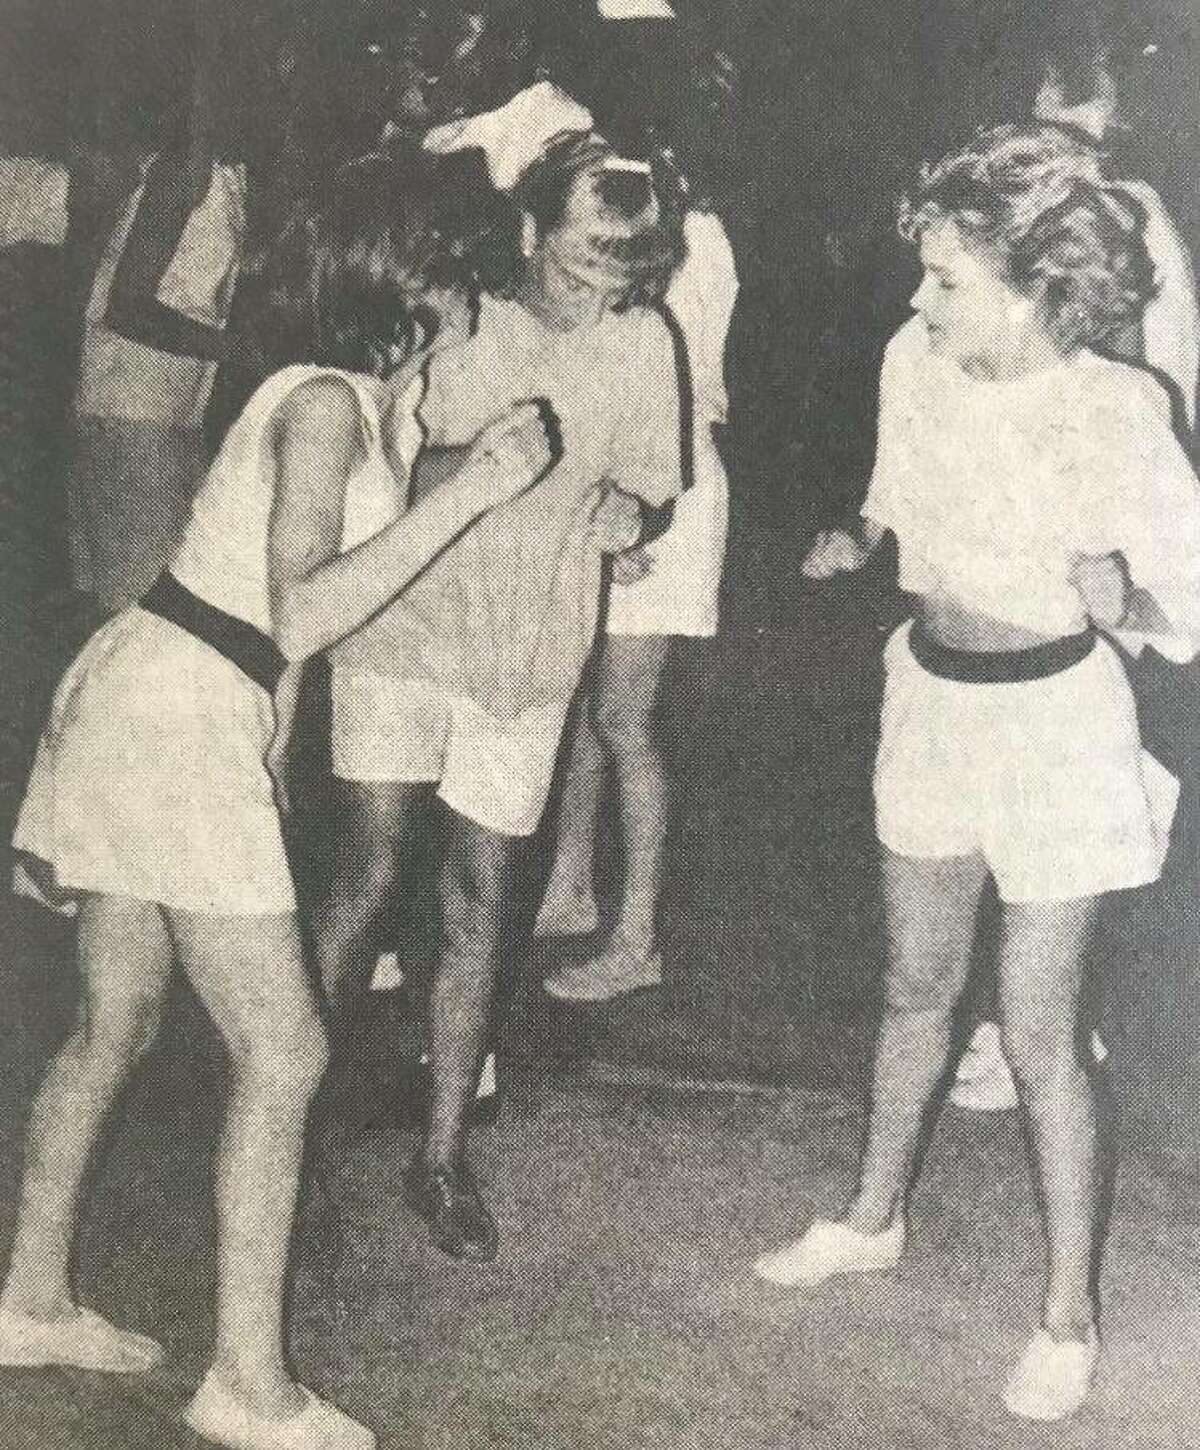 Laura Schoren, 14, left, Maggie Tancini, 14, and Tonya Weiger, 15, at a teen dance, sponsored by Midland Parks and Recreation Department. June 1988